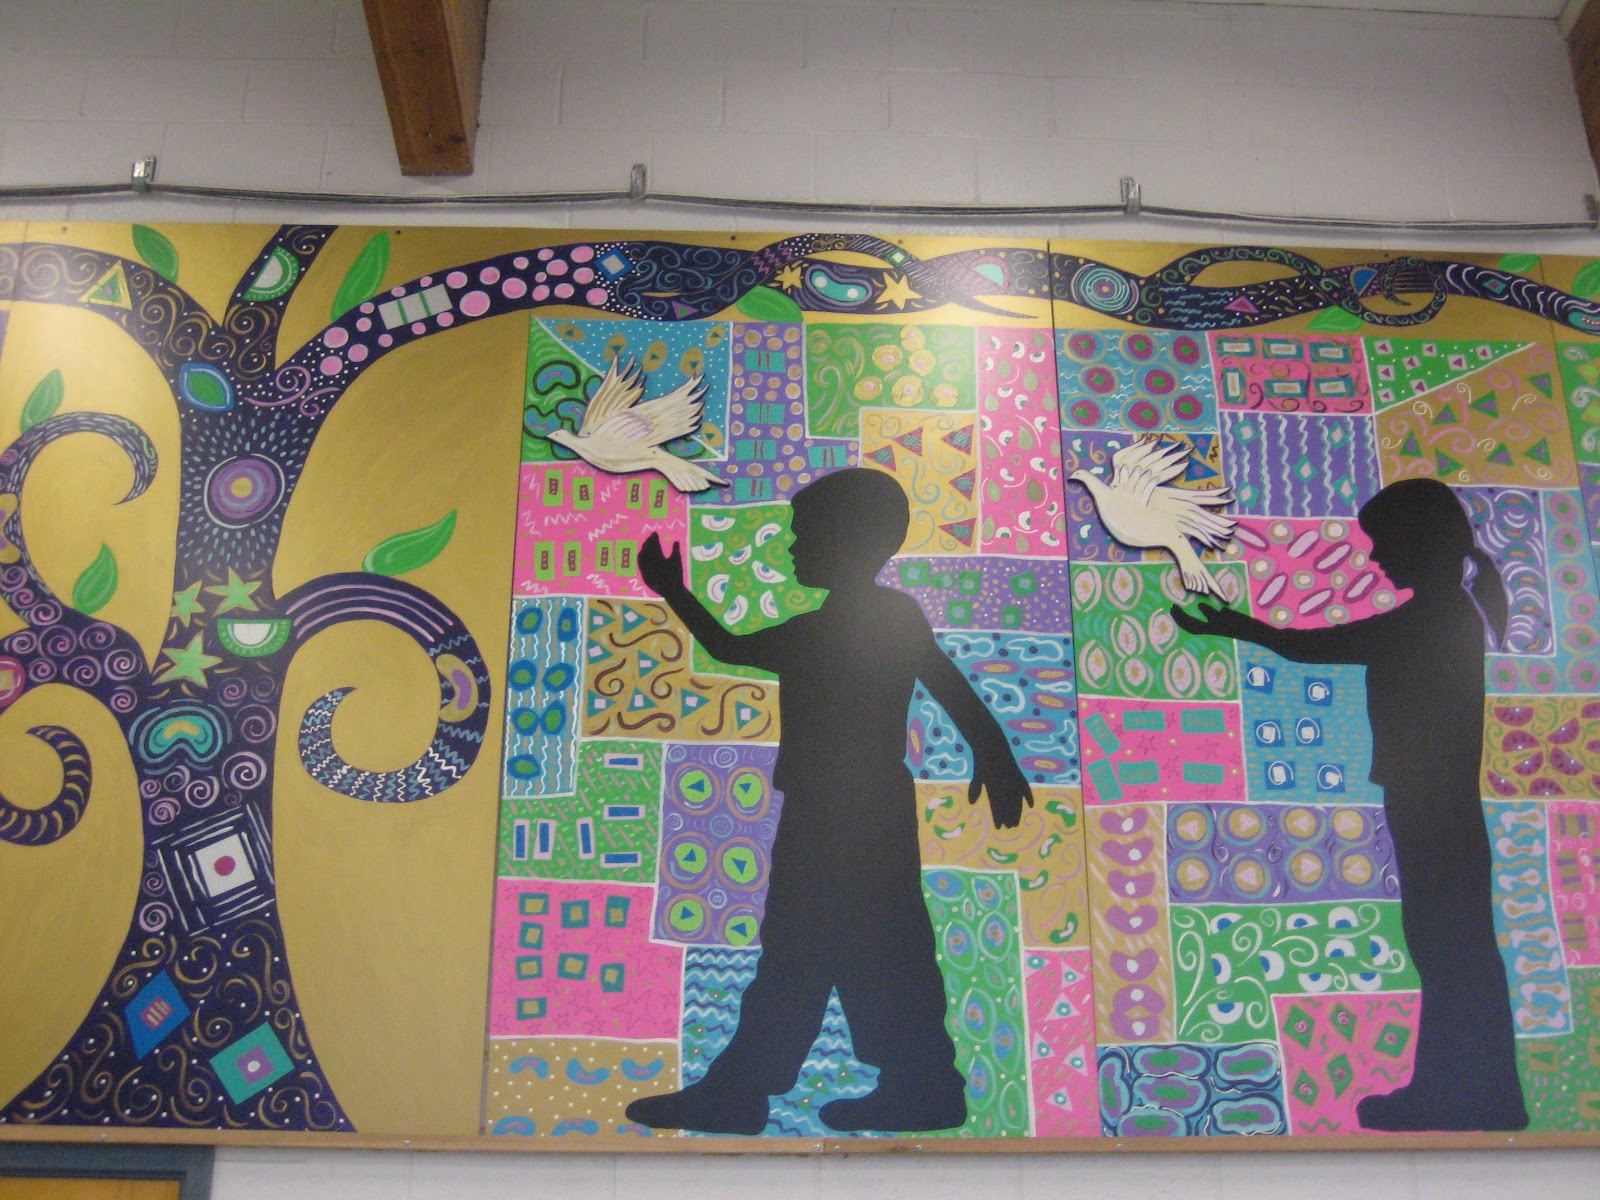 Do art gustav klimt mural for Community mural ideas